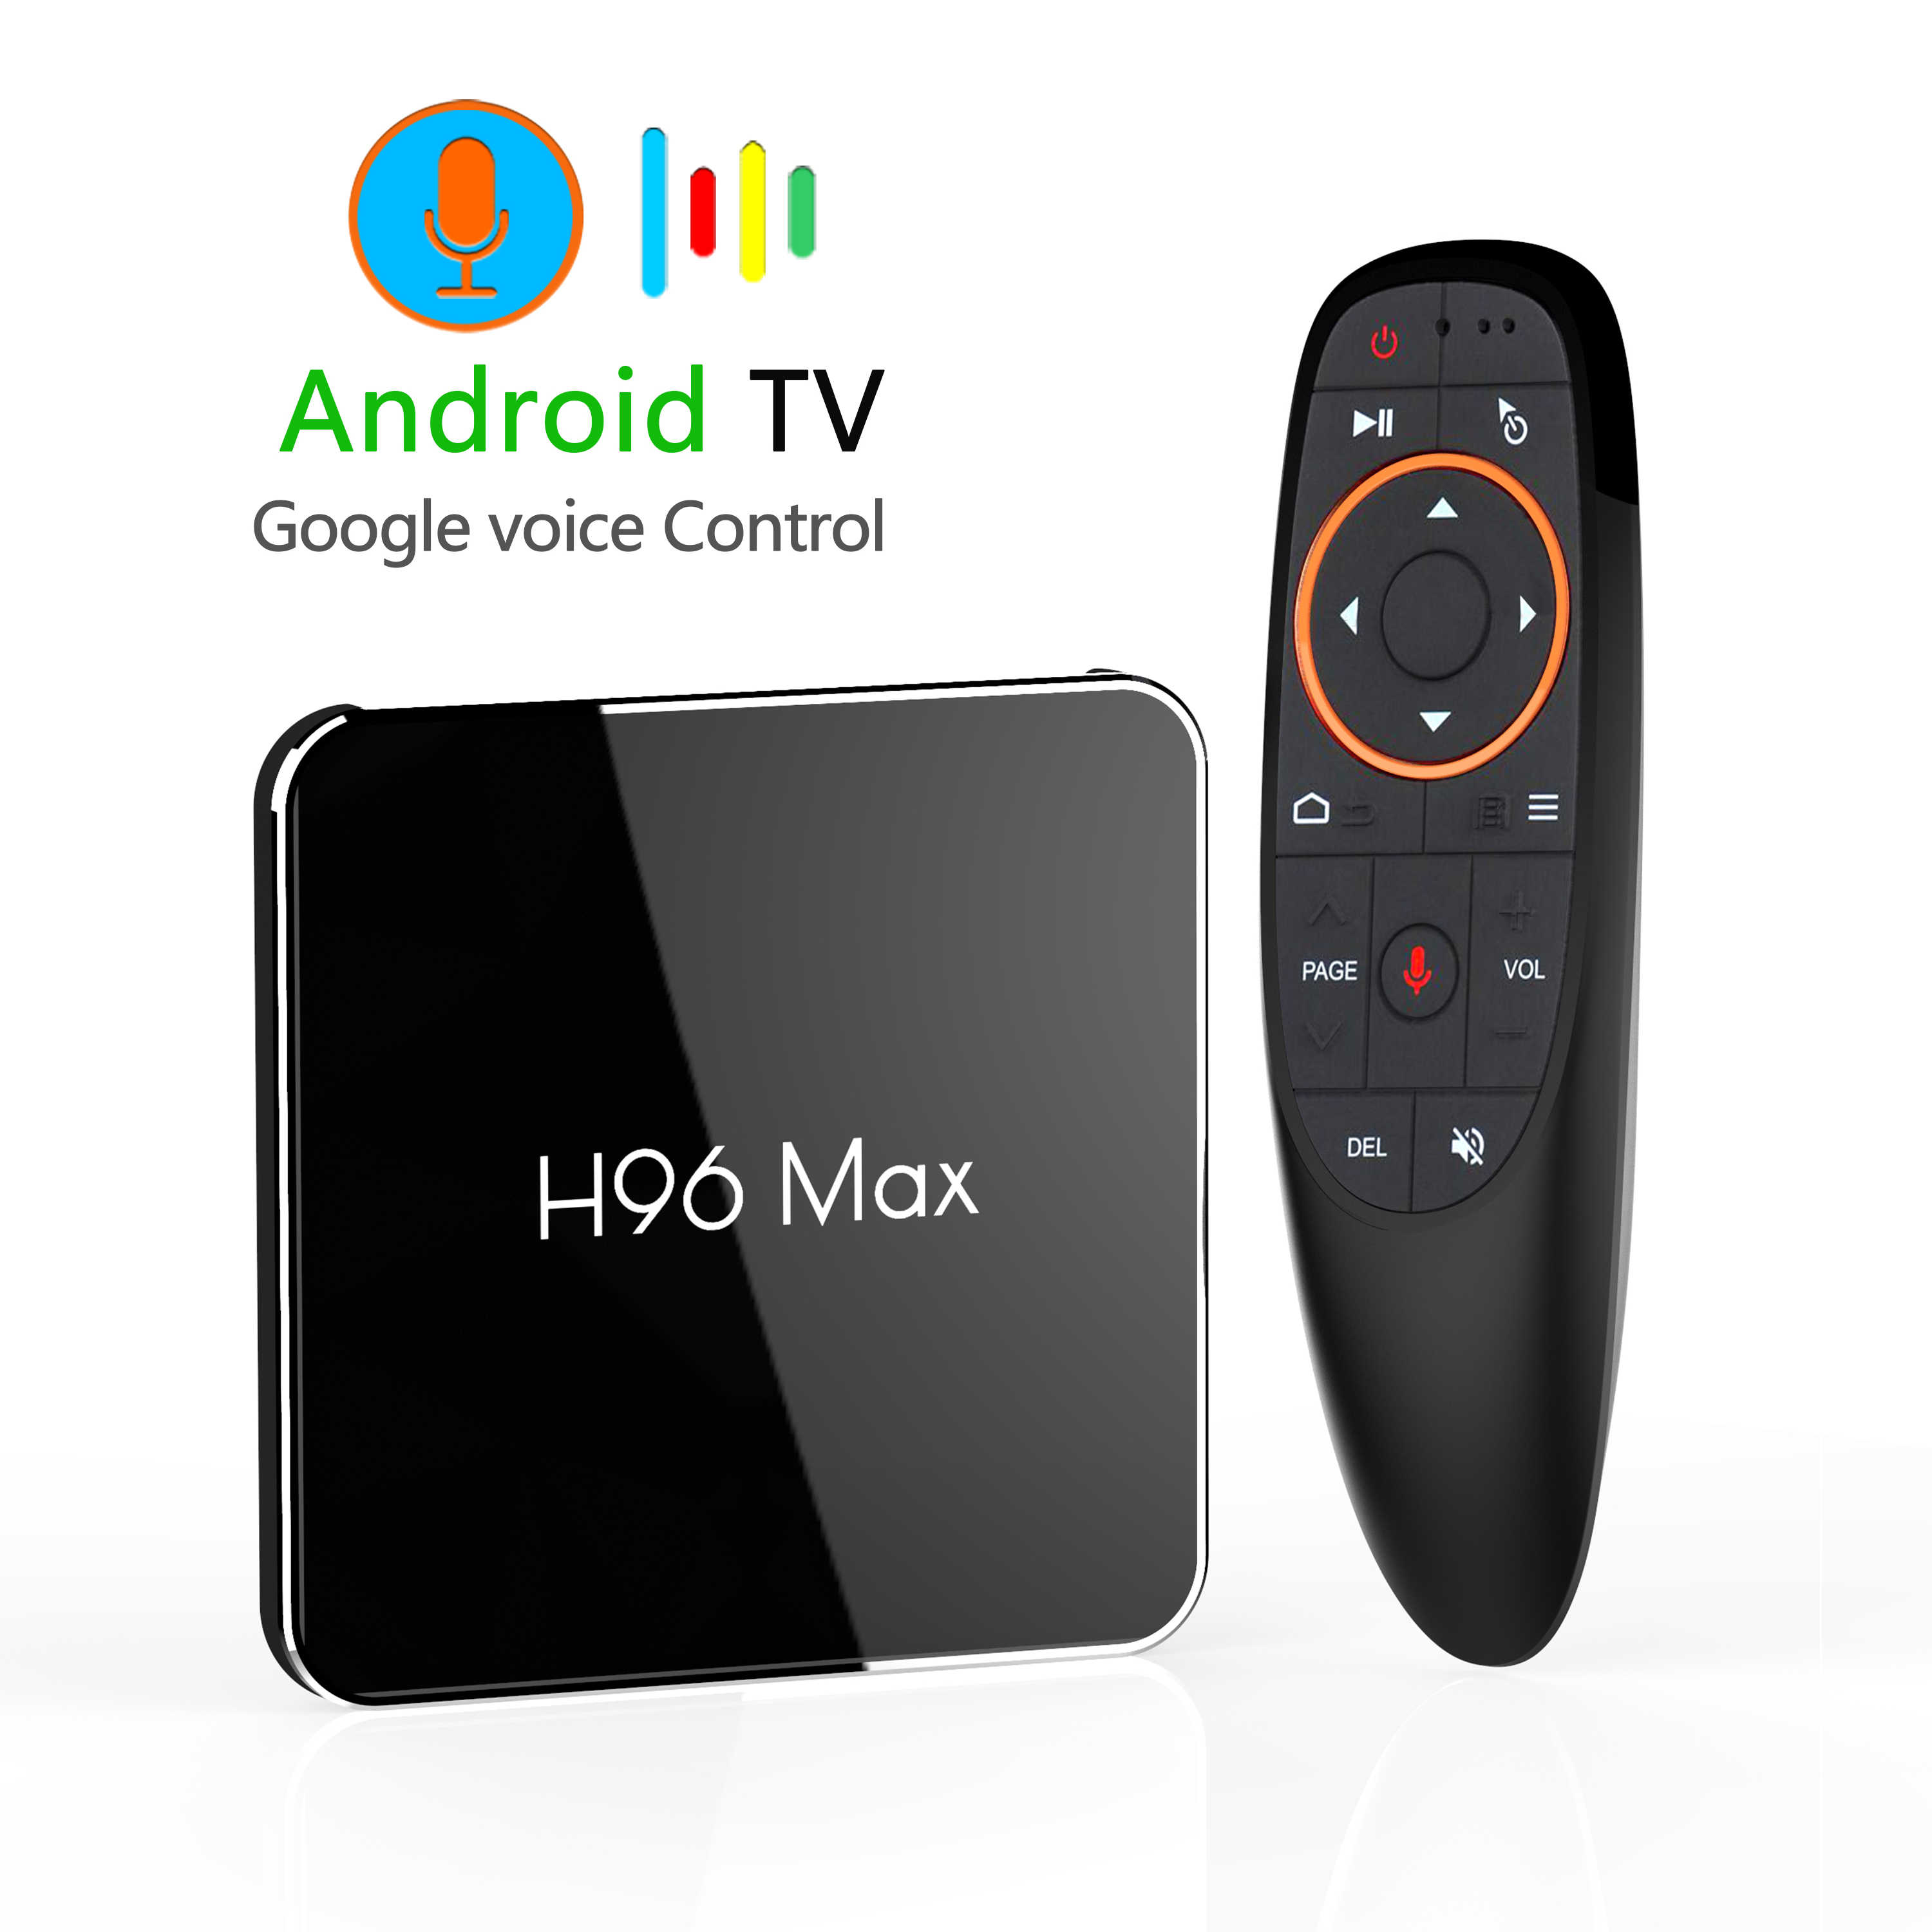 H96 MAX X2 Android 9.0 Smart TV Box Amlogic S905X2 4GB 64GB 5G Wifi H.265 4K USB3.0 Google Play Store Youtube lecteur multimédia